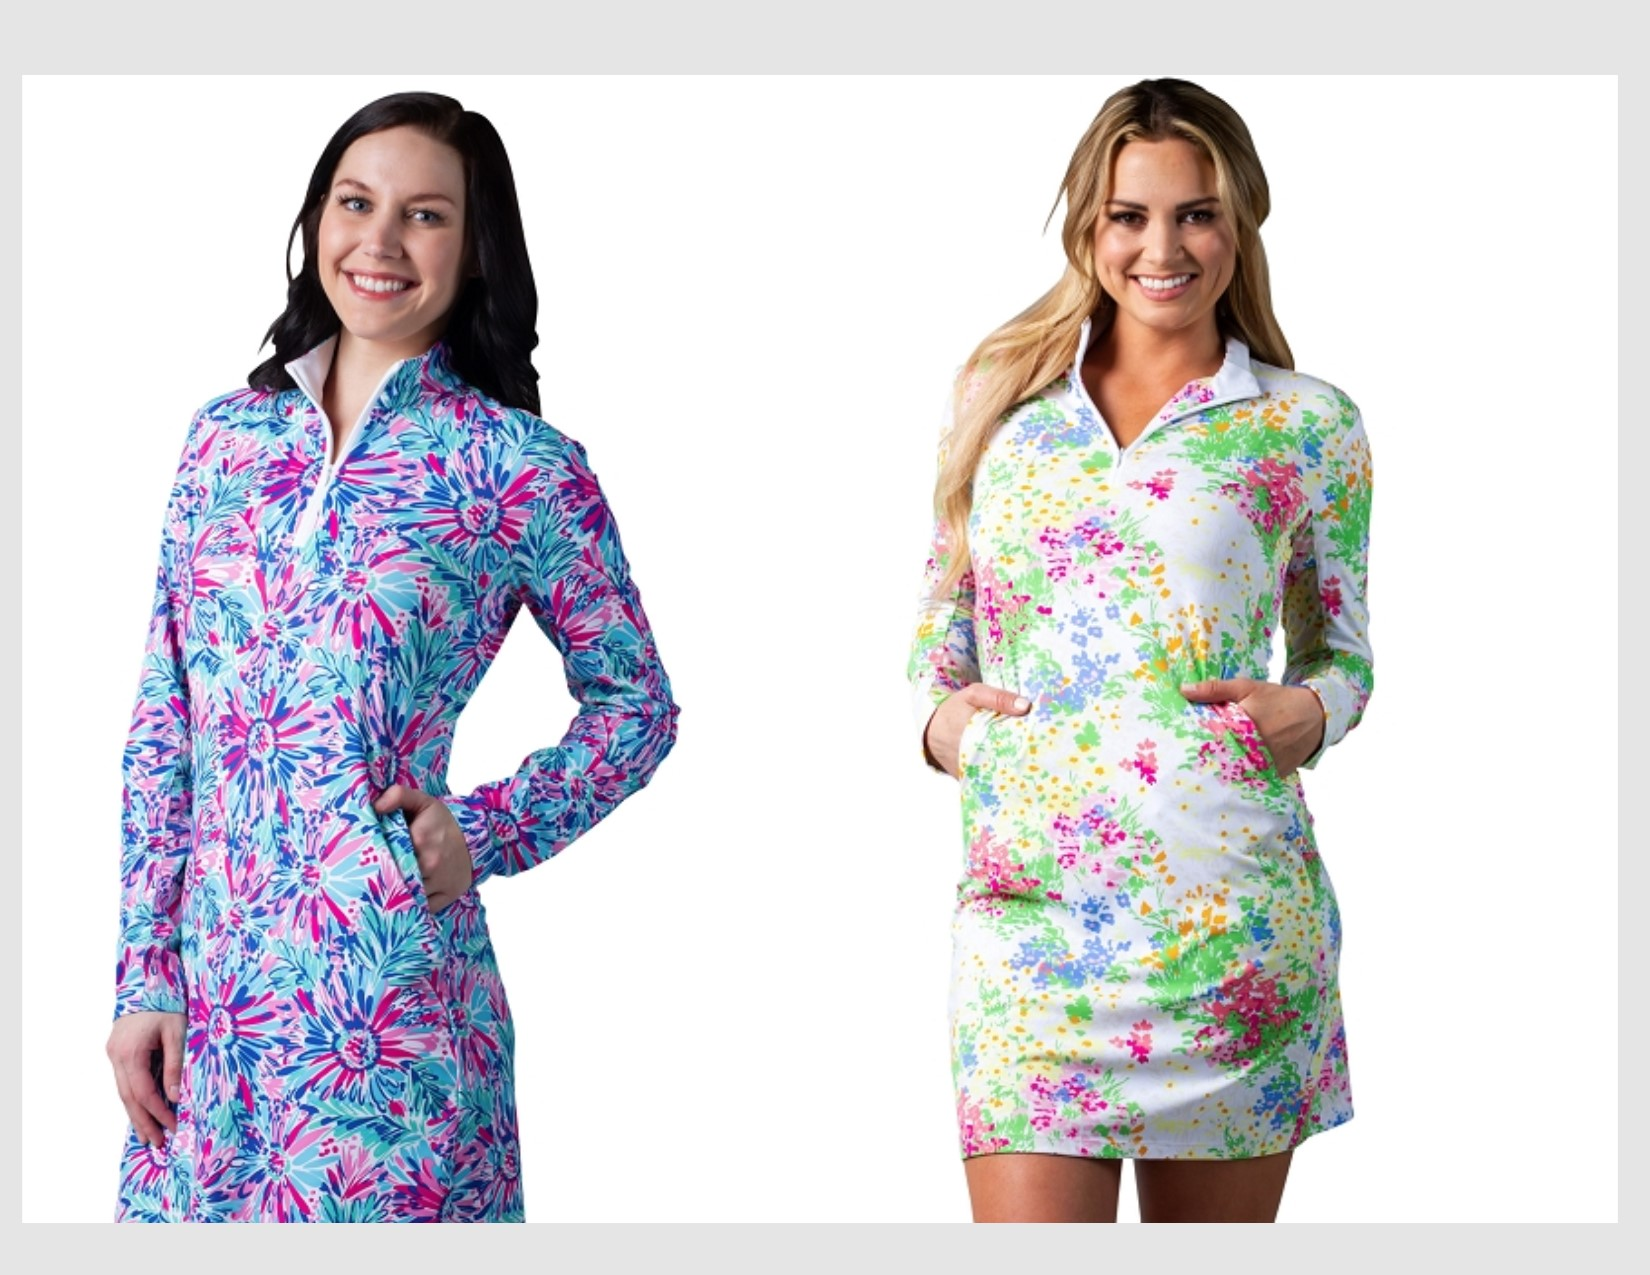 Twofer 900720-C. SanSoleil SolStyle ICE. Long Sleeve Zip Mock Dress with attached athletic short.  Lola Floral  and Provence